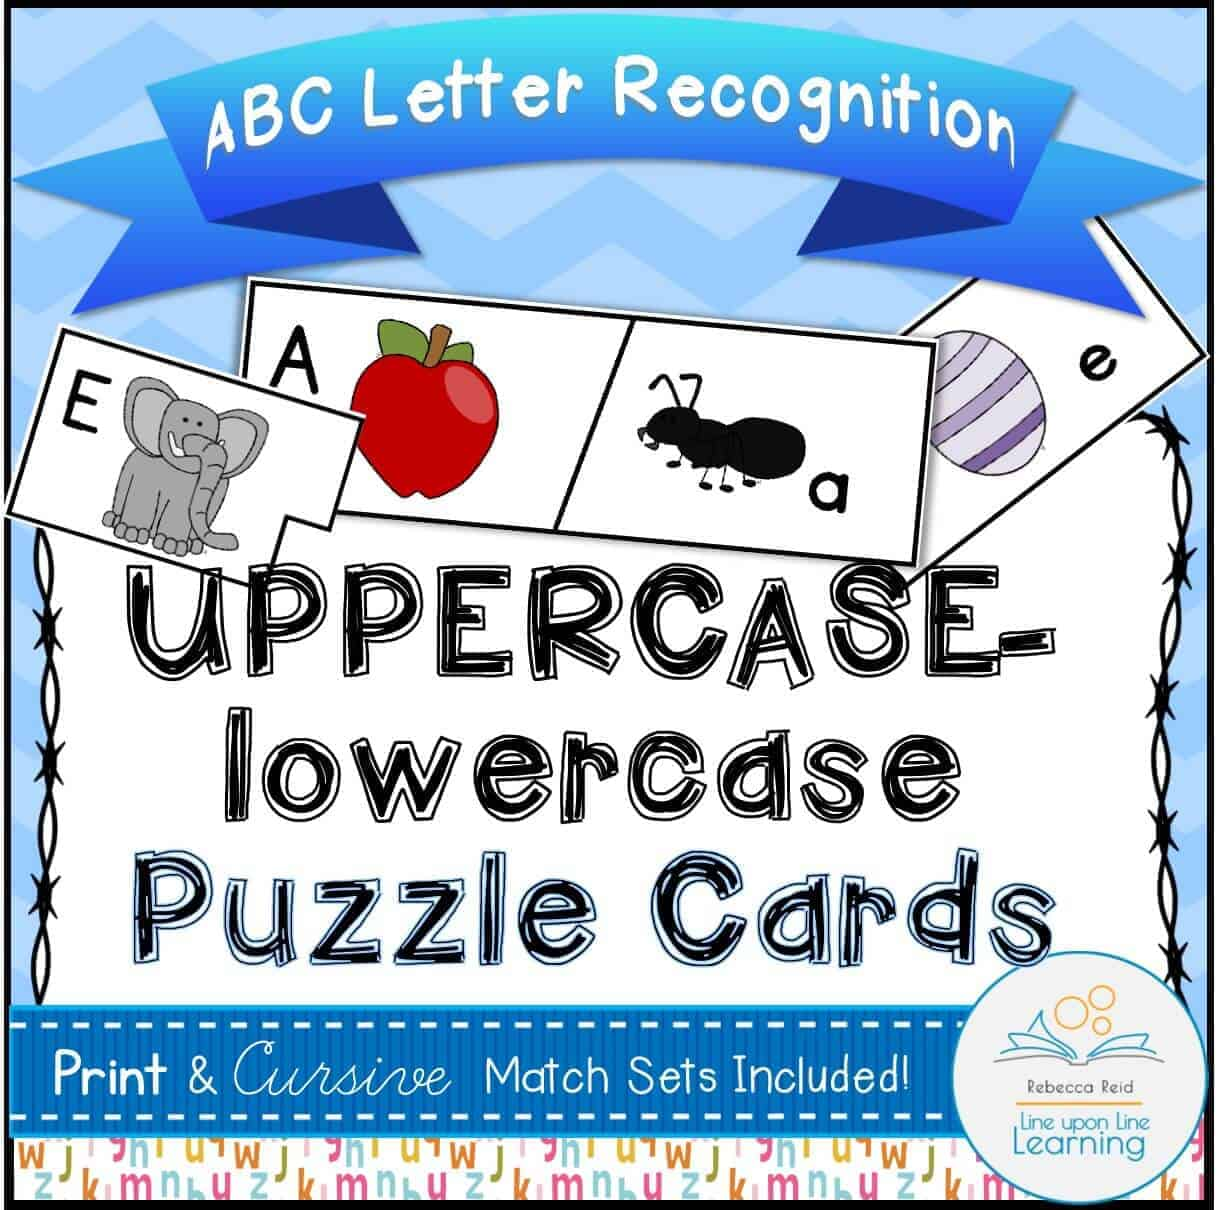 Abc Puzzle Cards Uppercase Lowercase Alphabet Recognition Line Upon Line Learning